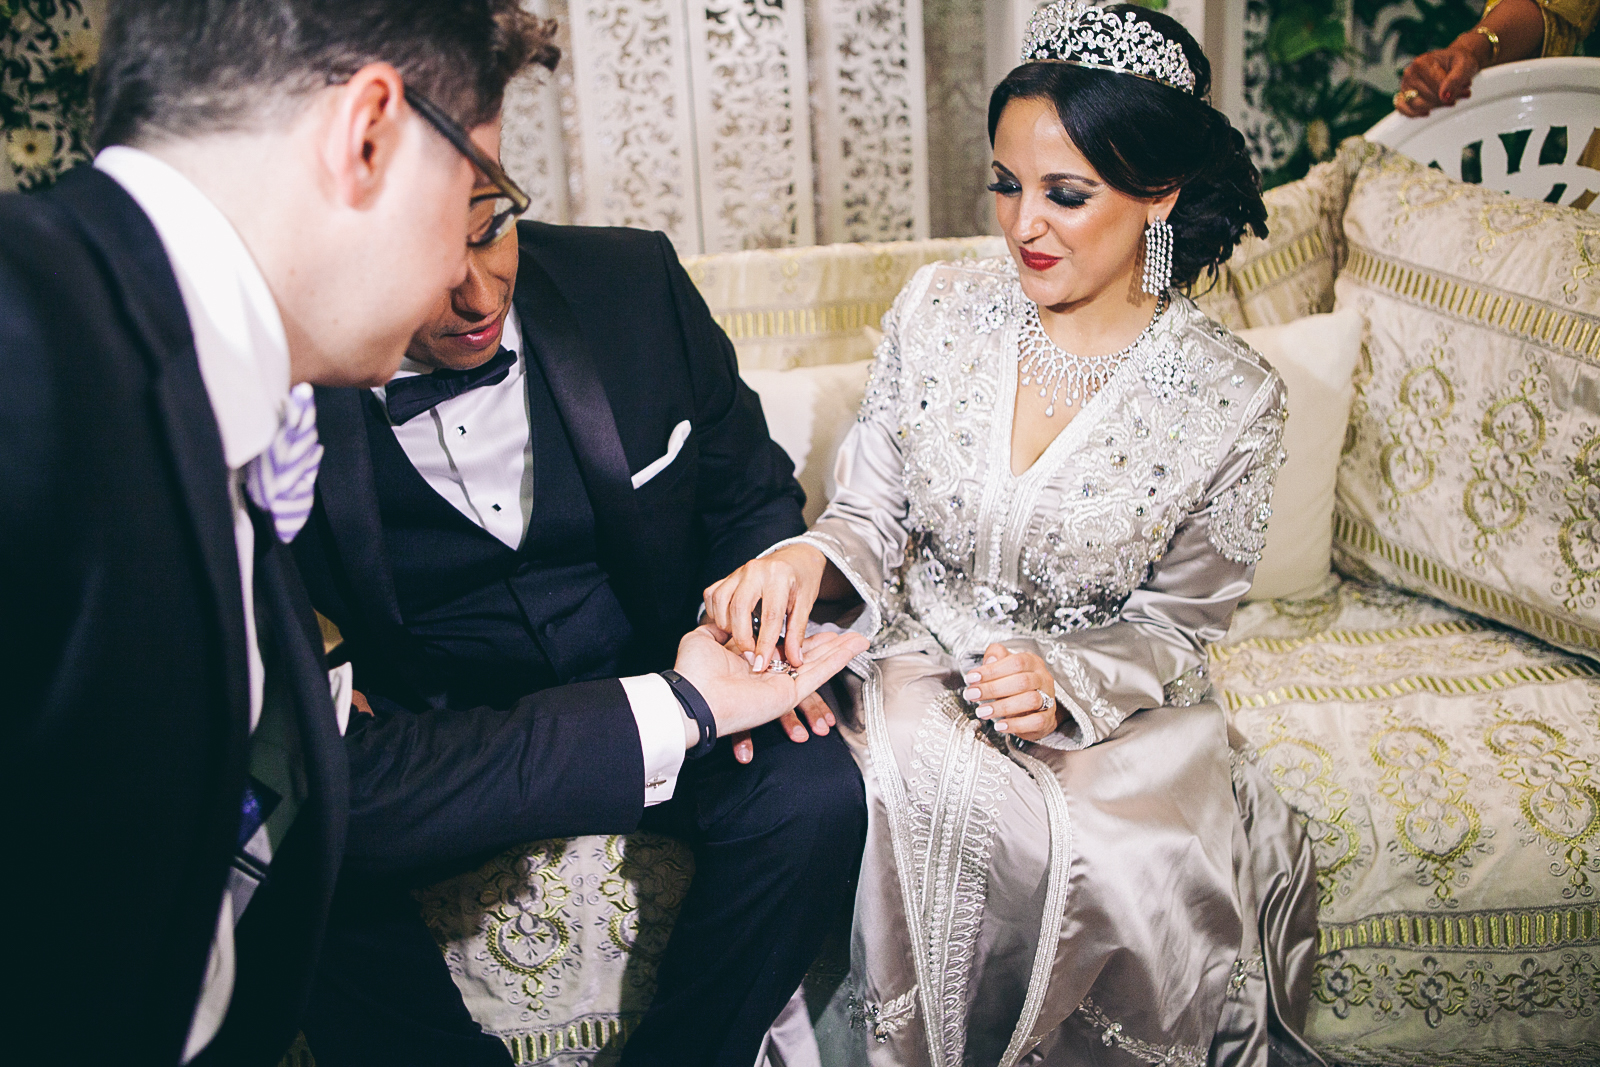 traditional_moroccan_wedding_photographry_casablanca_morocco_houda_vivek_ebony_siovhan_bokeh_photography_091.jpg